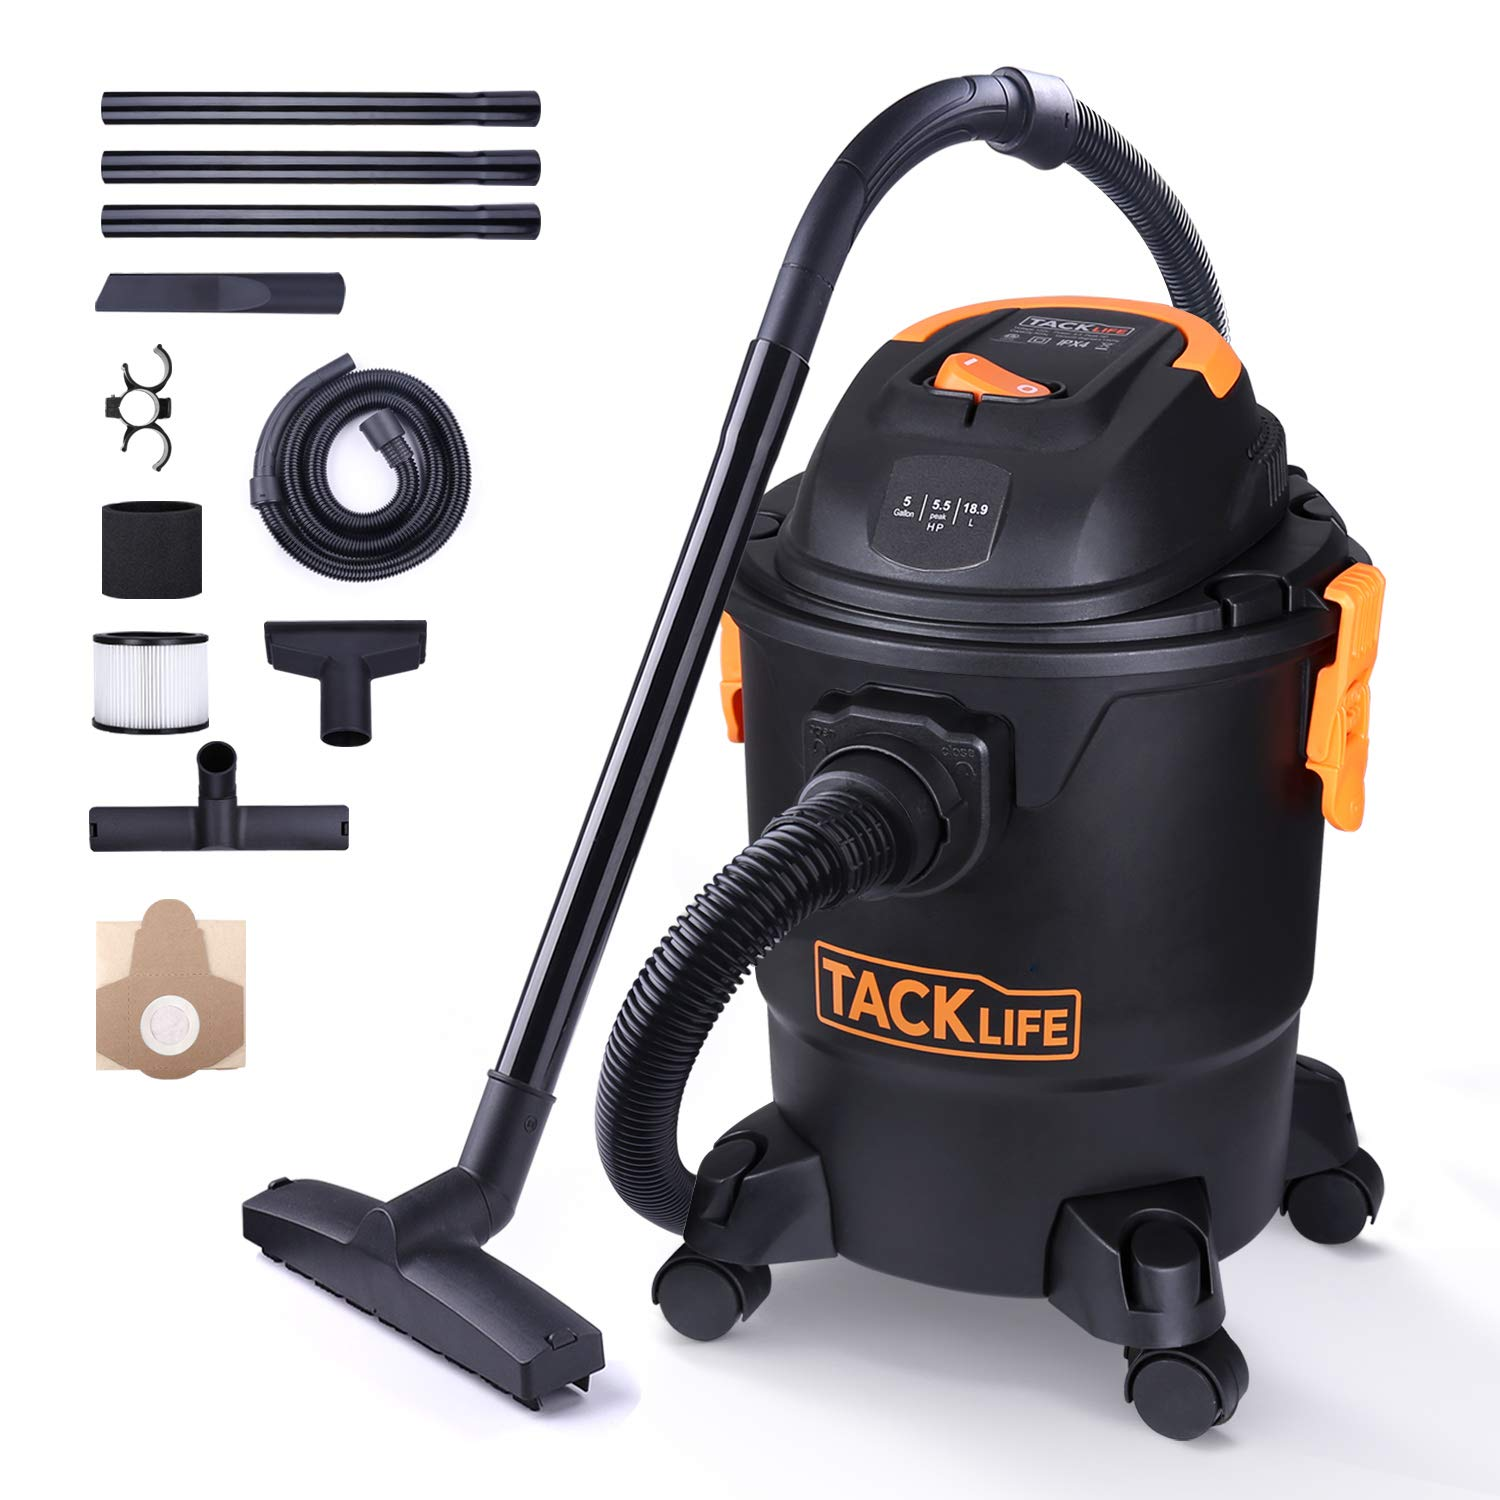 TACKLIFE Wet Dry Vacuum, 5 Gallon, 5.5 Peak HP with 20 FT Clean Range, 4-Layer Filtration System and Safety Buoy Technology for Dry/Wet/Blowing, Multipurpose Accessories Included - PVC01A